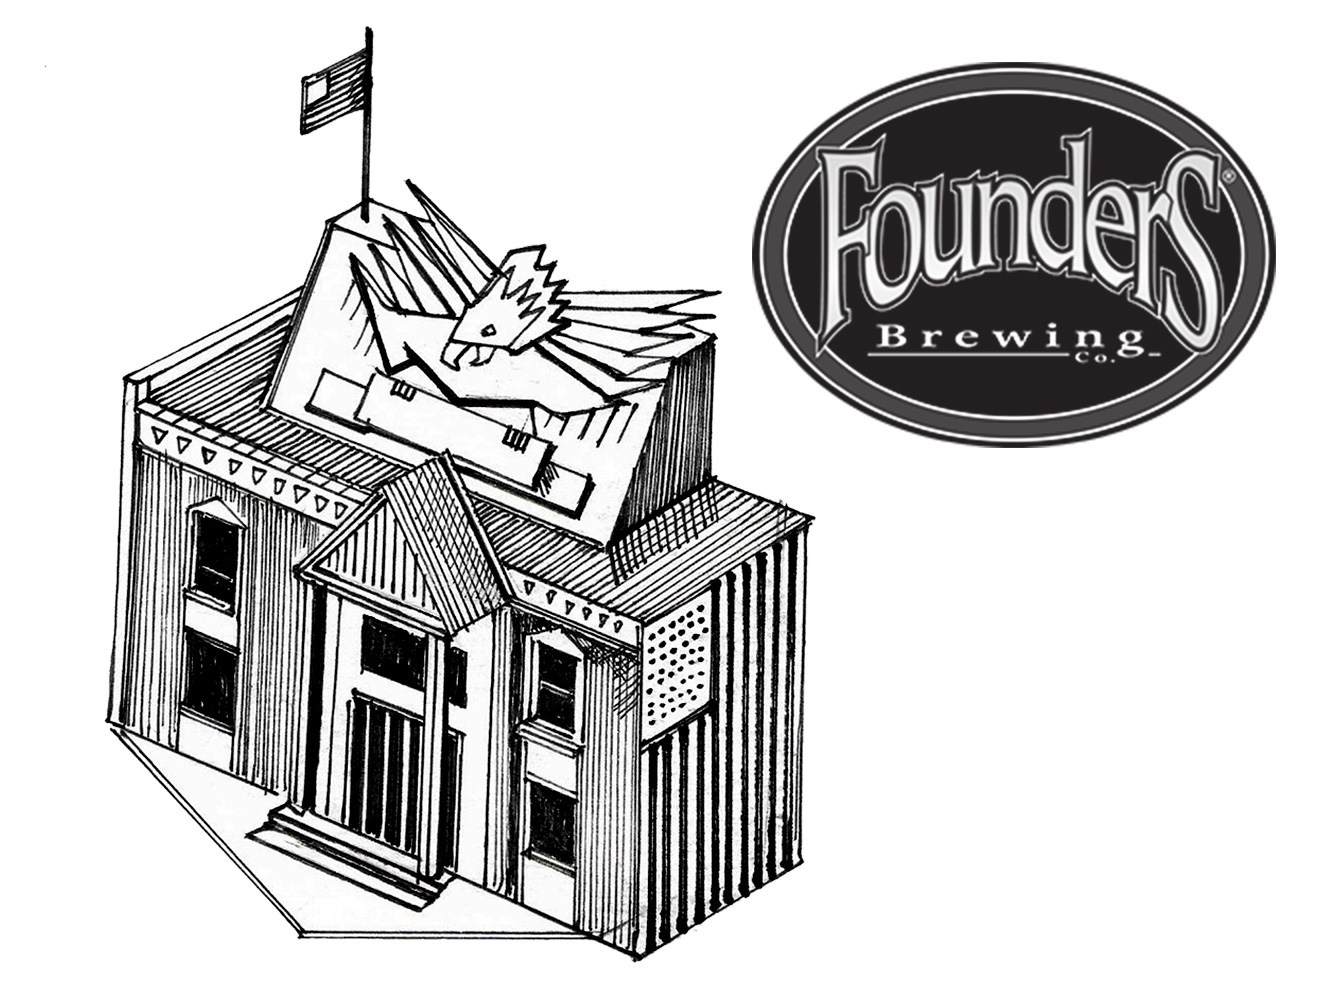 The Brewery Founders Brewing Company